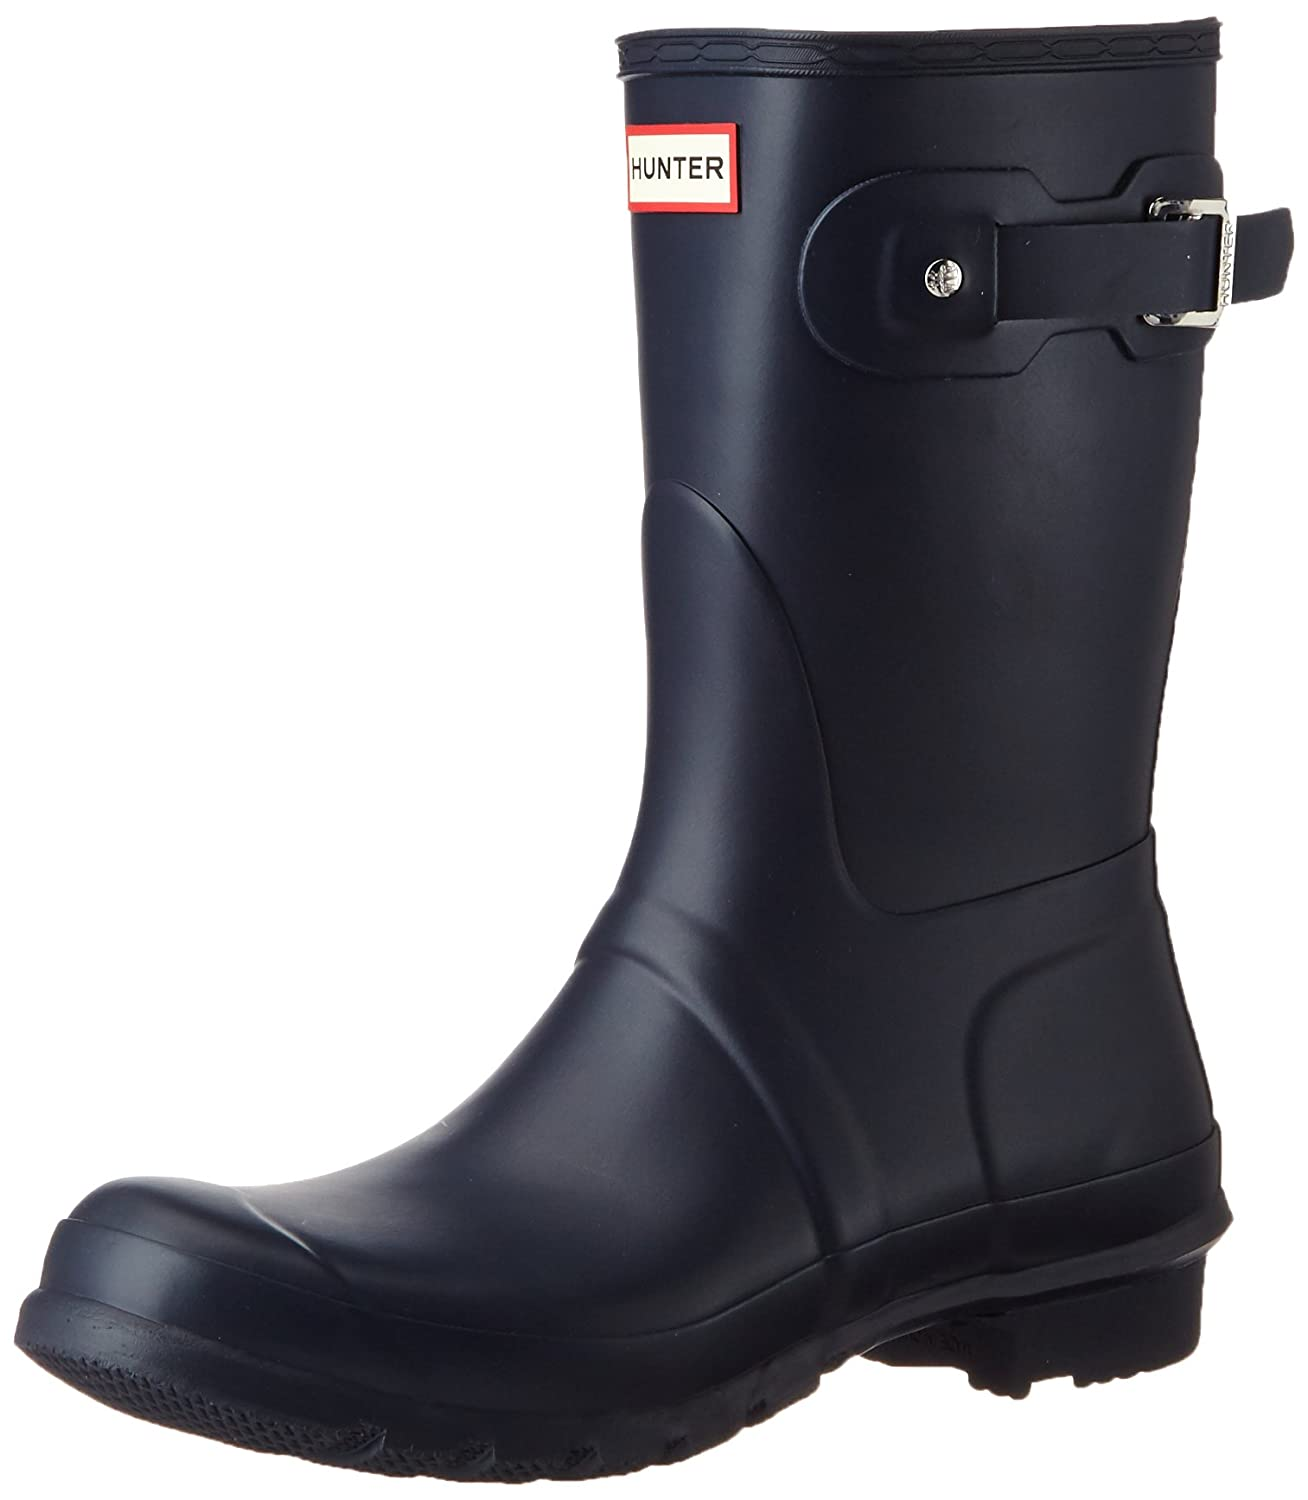 Hunter Women's Original Short Rain Boot B00K1WBL9G 11 B(M) US|Navy Matte